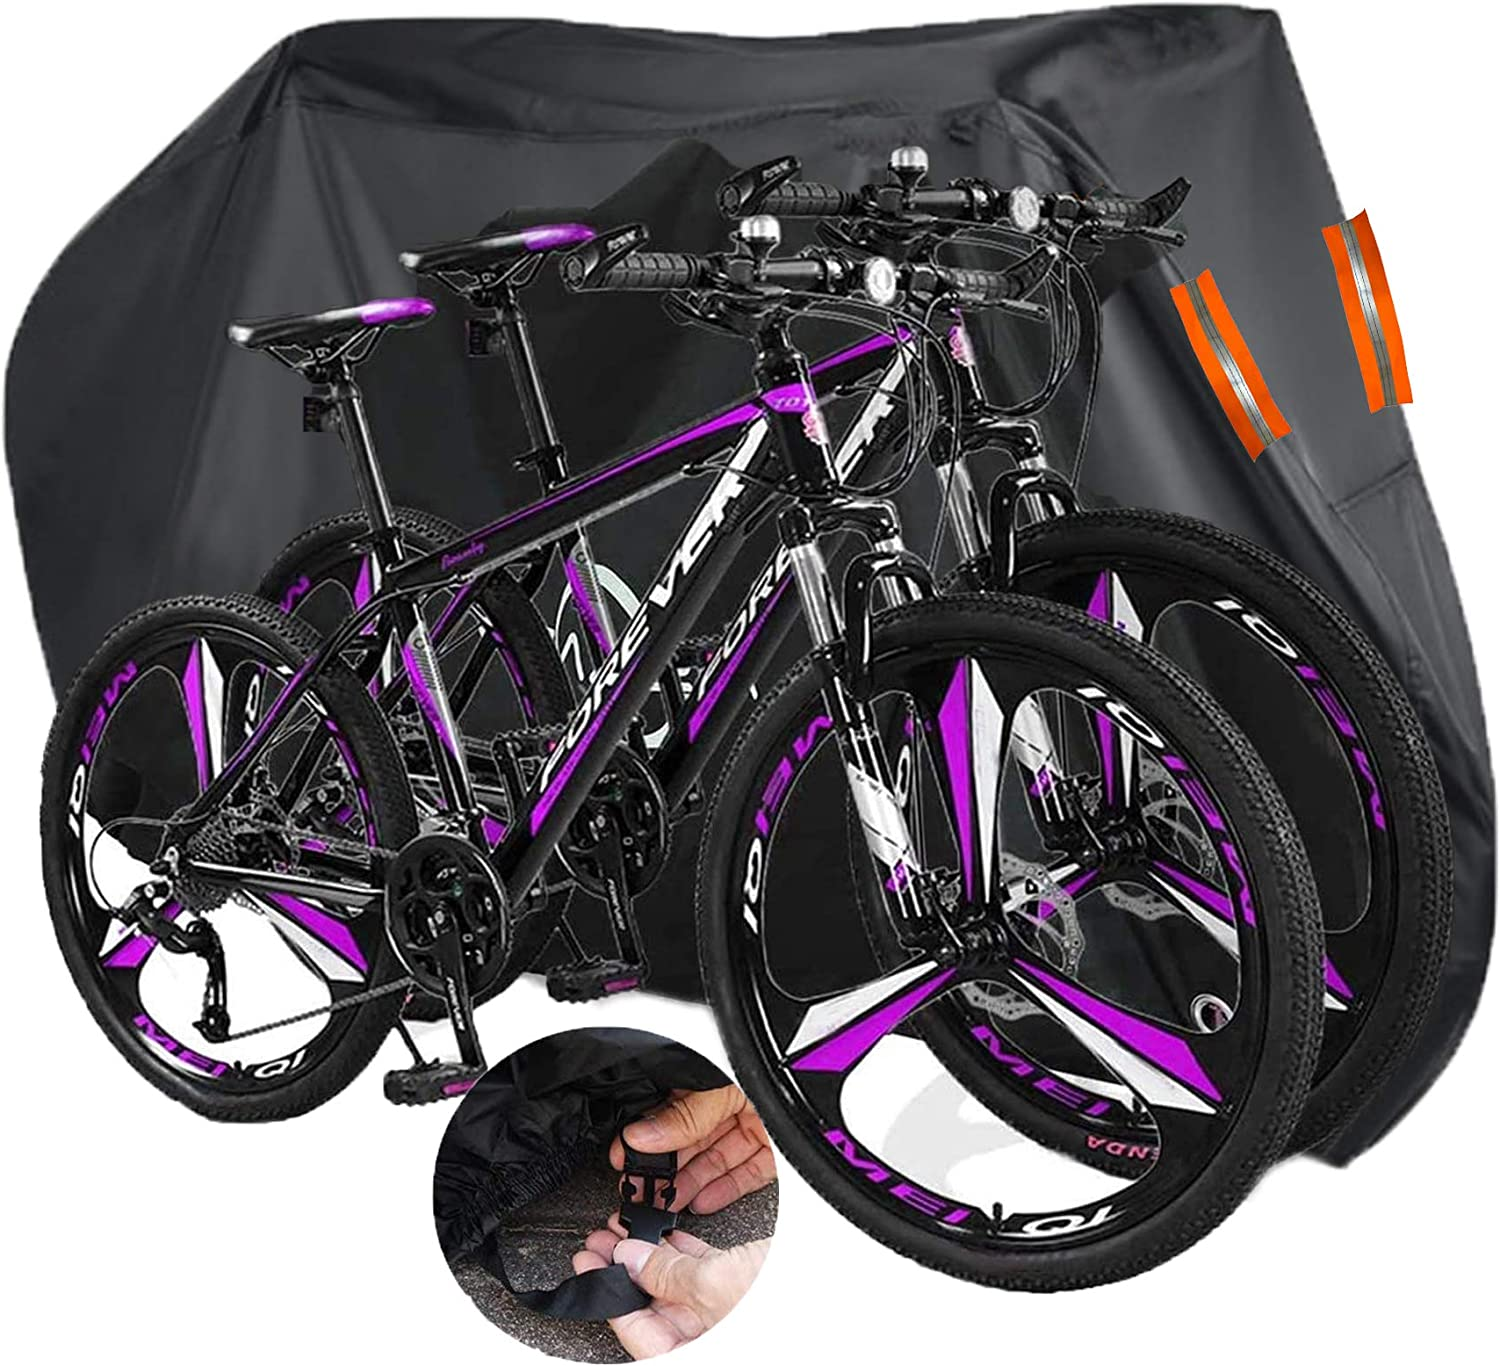 Indeed BUY Bike Cover for 2 or 3 Bikes Waterproof Bicycle Cover Outdoor Bike Storage Covers XL XXL 420D Heavy Duty Rain Sun UV Dust Wind Proof for Mountain Road Electric Bike etc